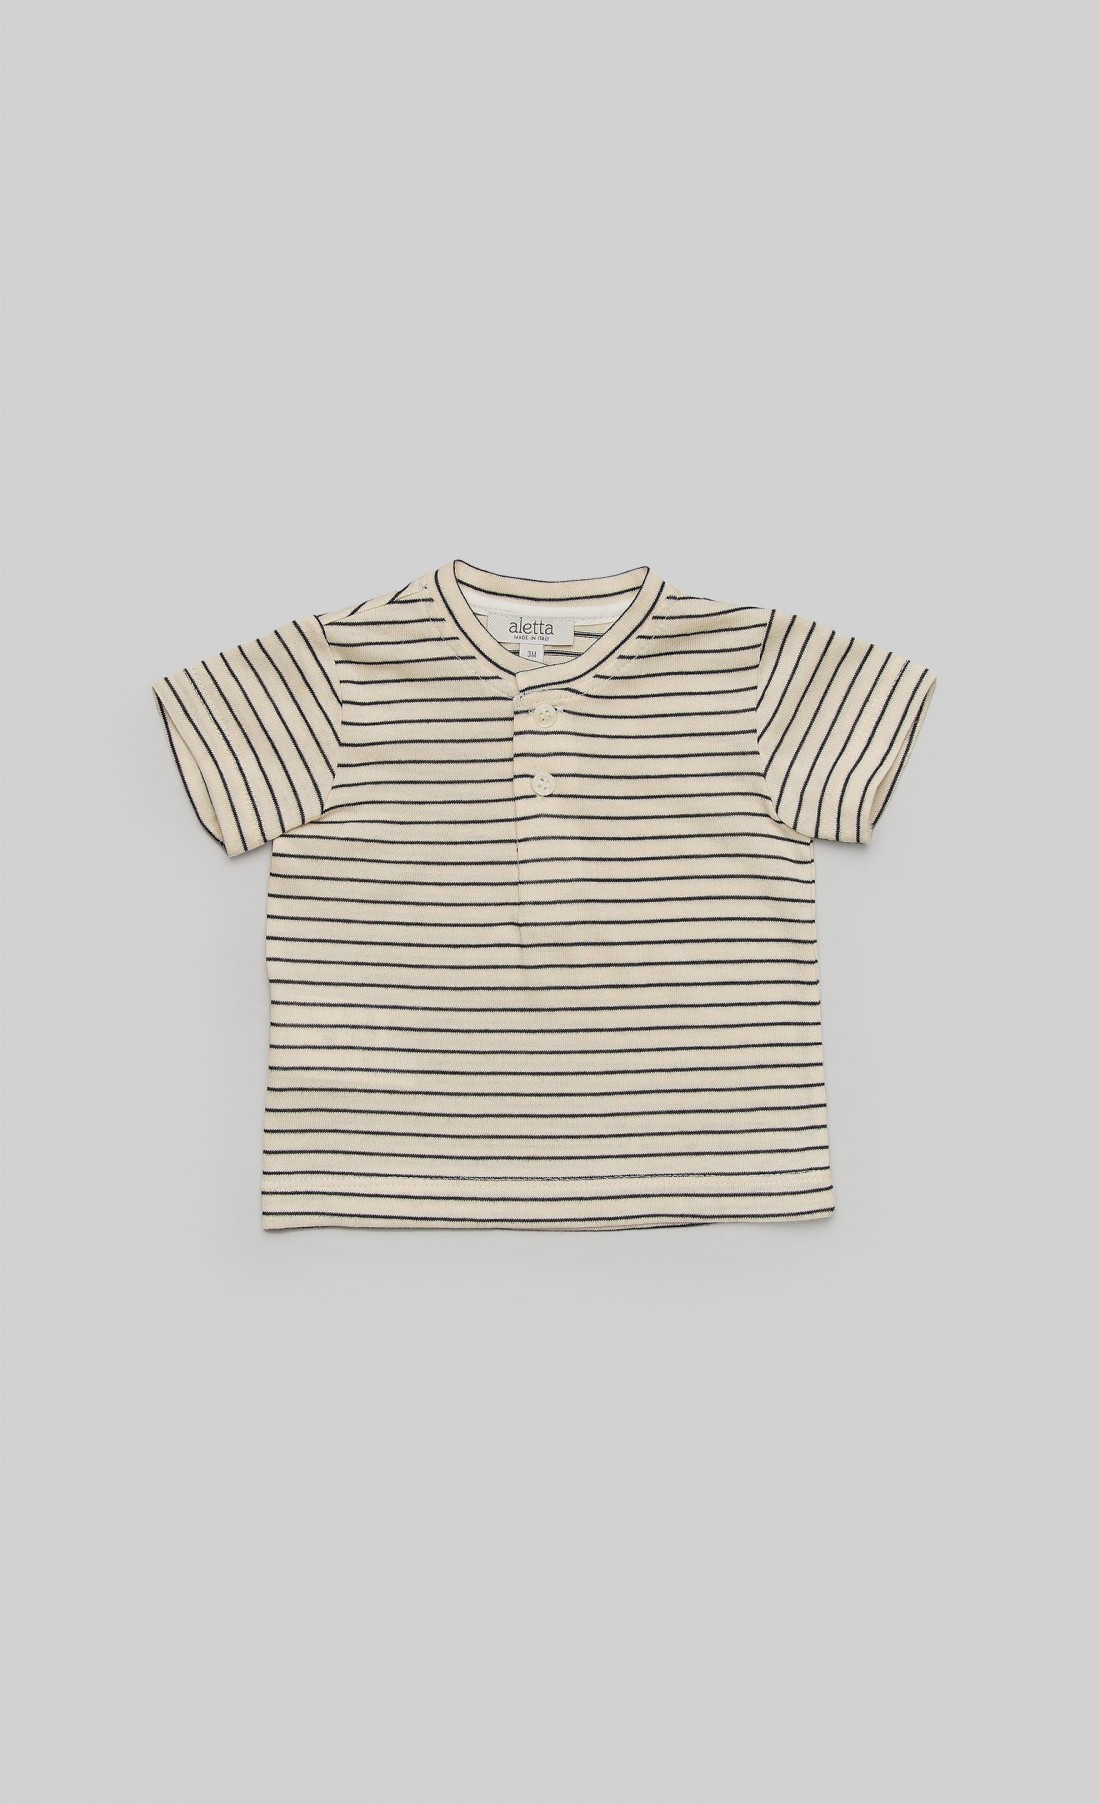 T-shirt in jersey panna con righe blu